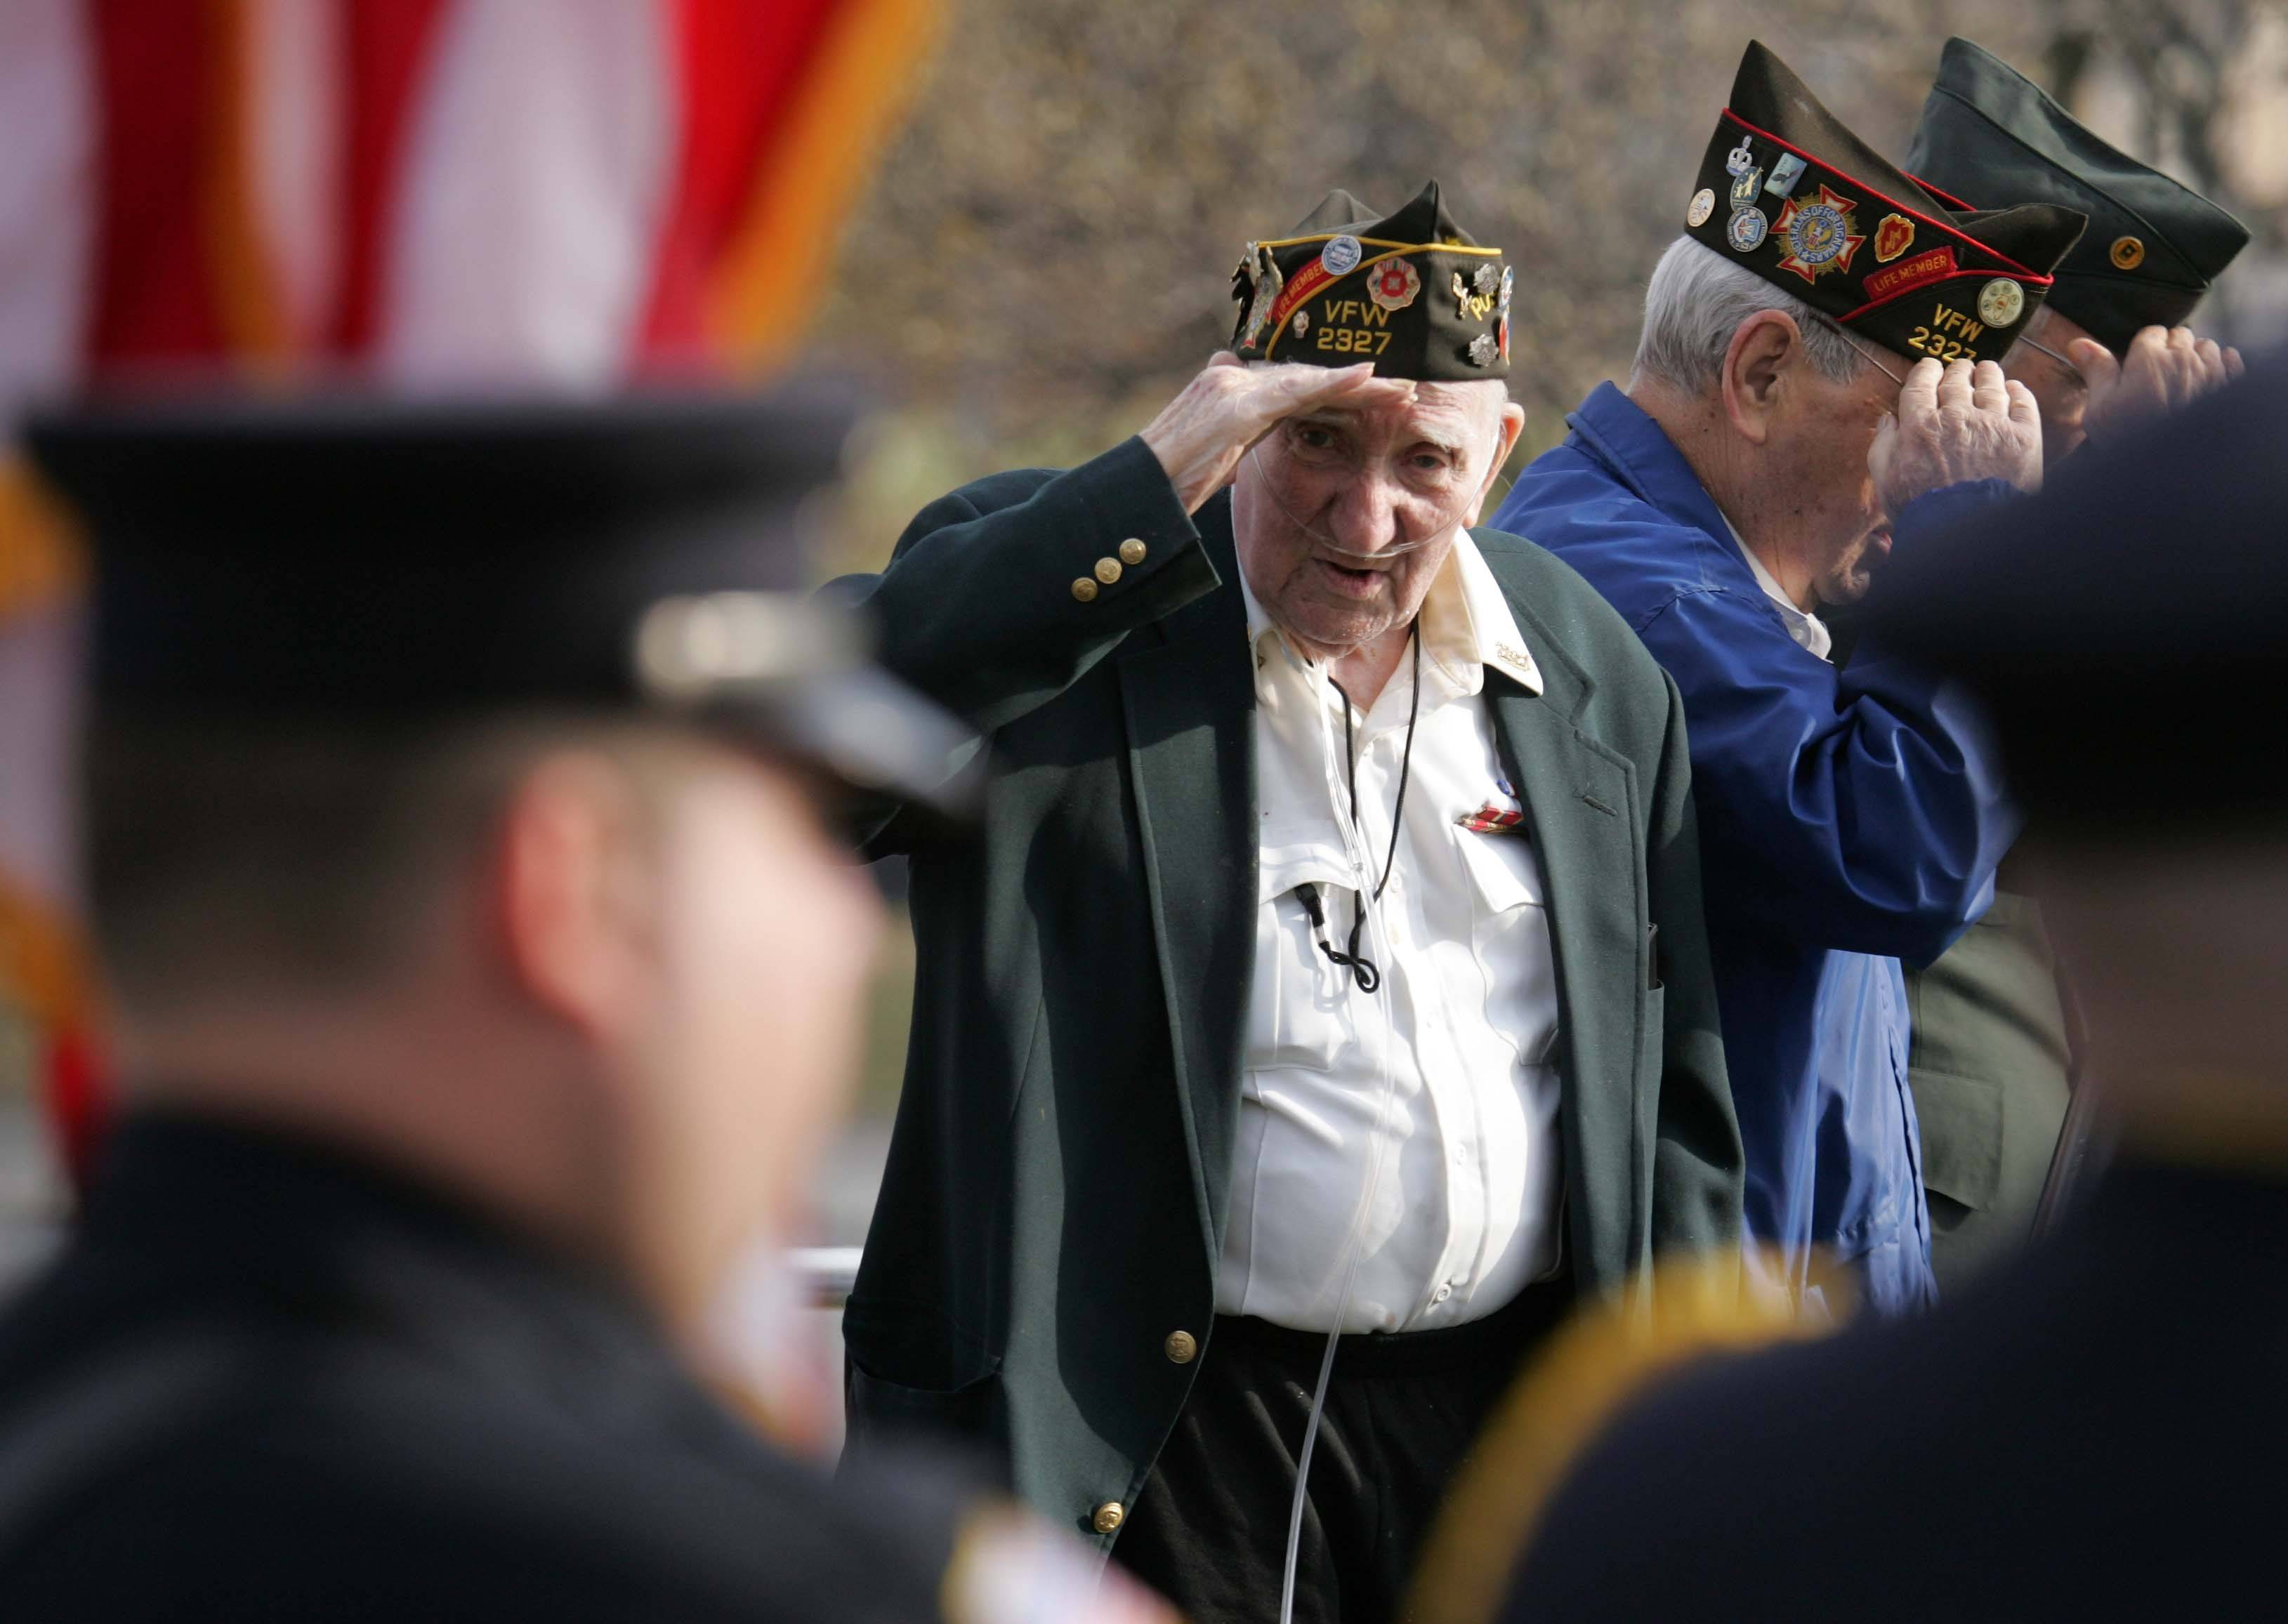 World War II veteran Jim Donaldson, who served in the Navy salutes the flag as the colors are posted during the South Elgin VFW Post 2327 Veterans Day service at Panton Mill Park in South Elgin Thursday.